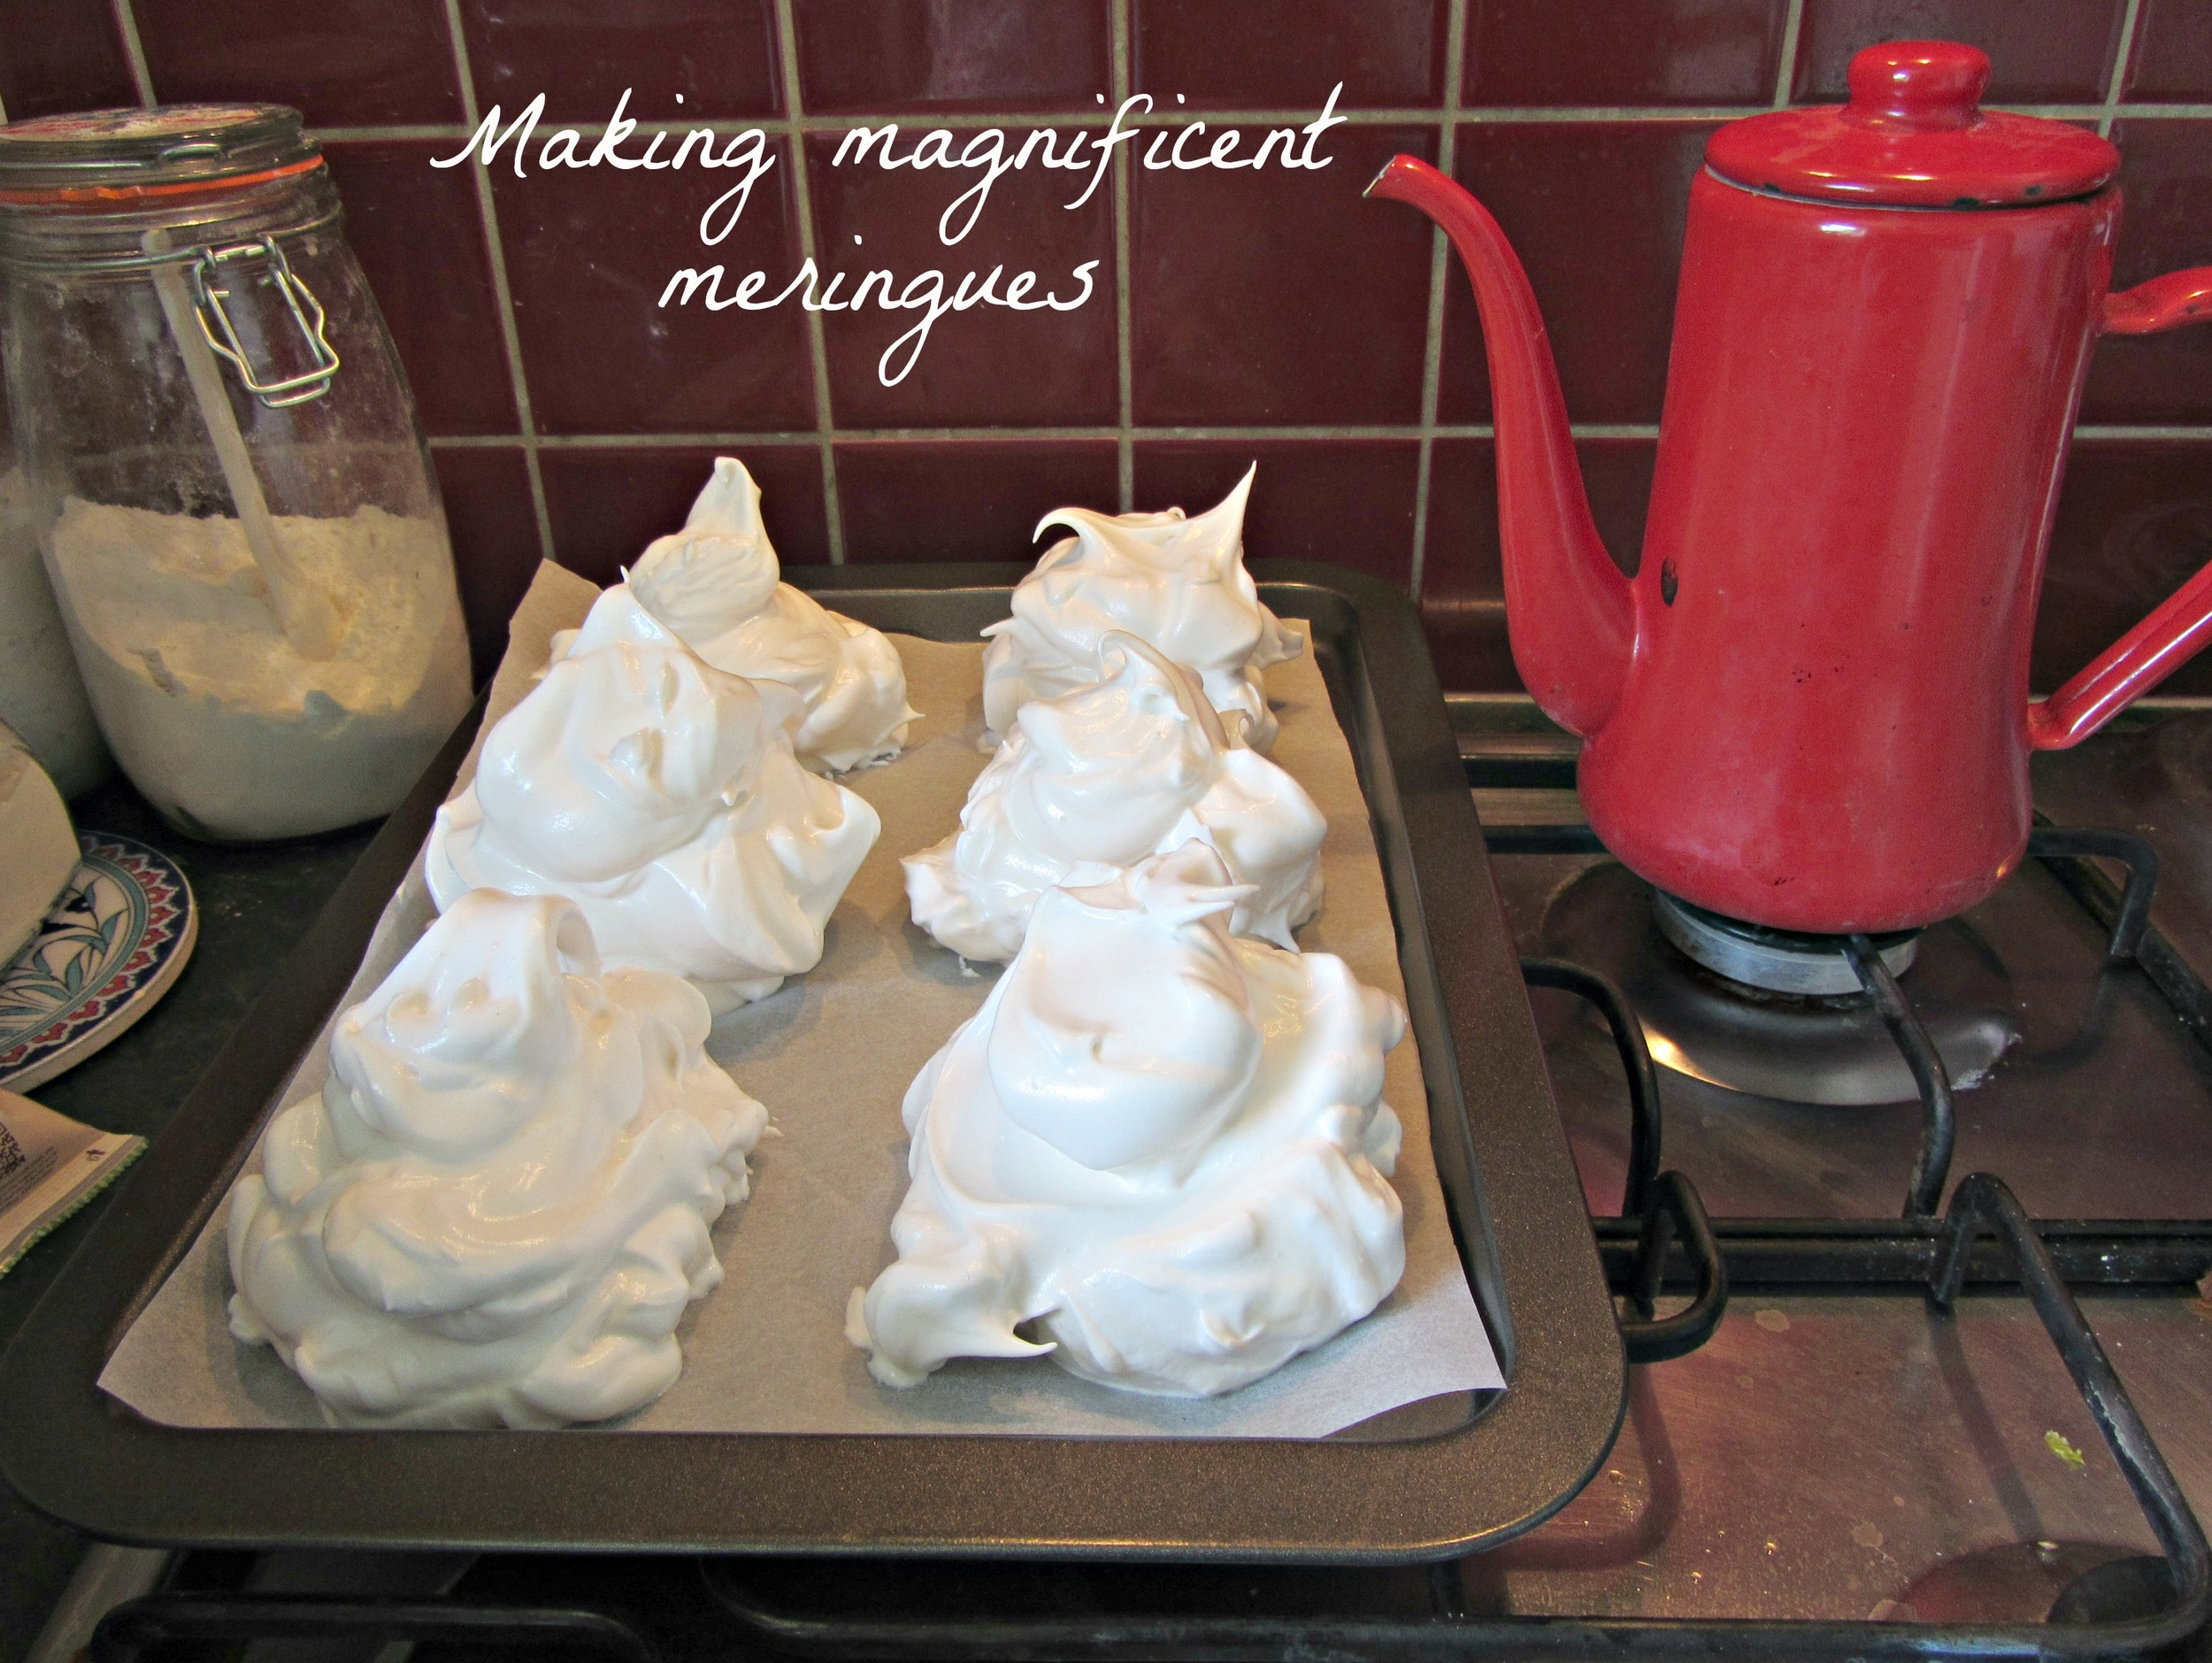 Making magnificent meringues